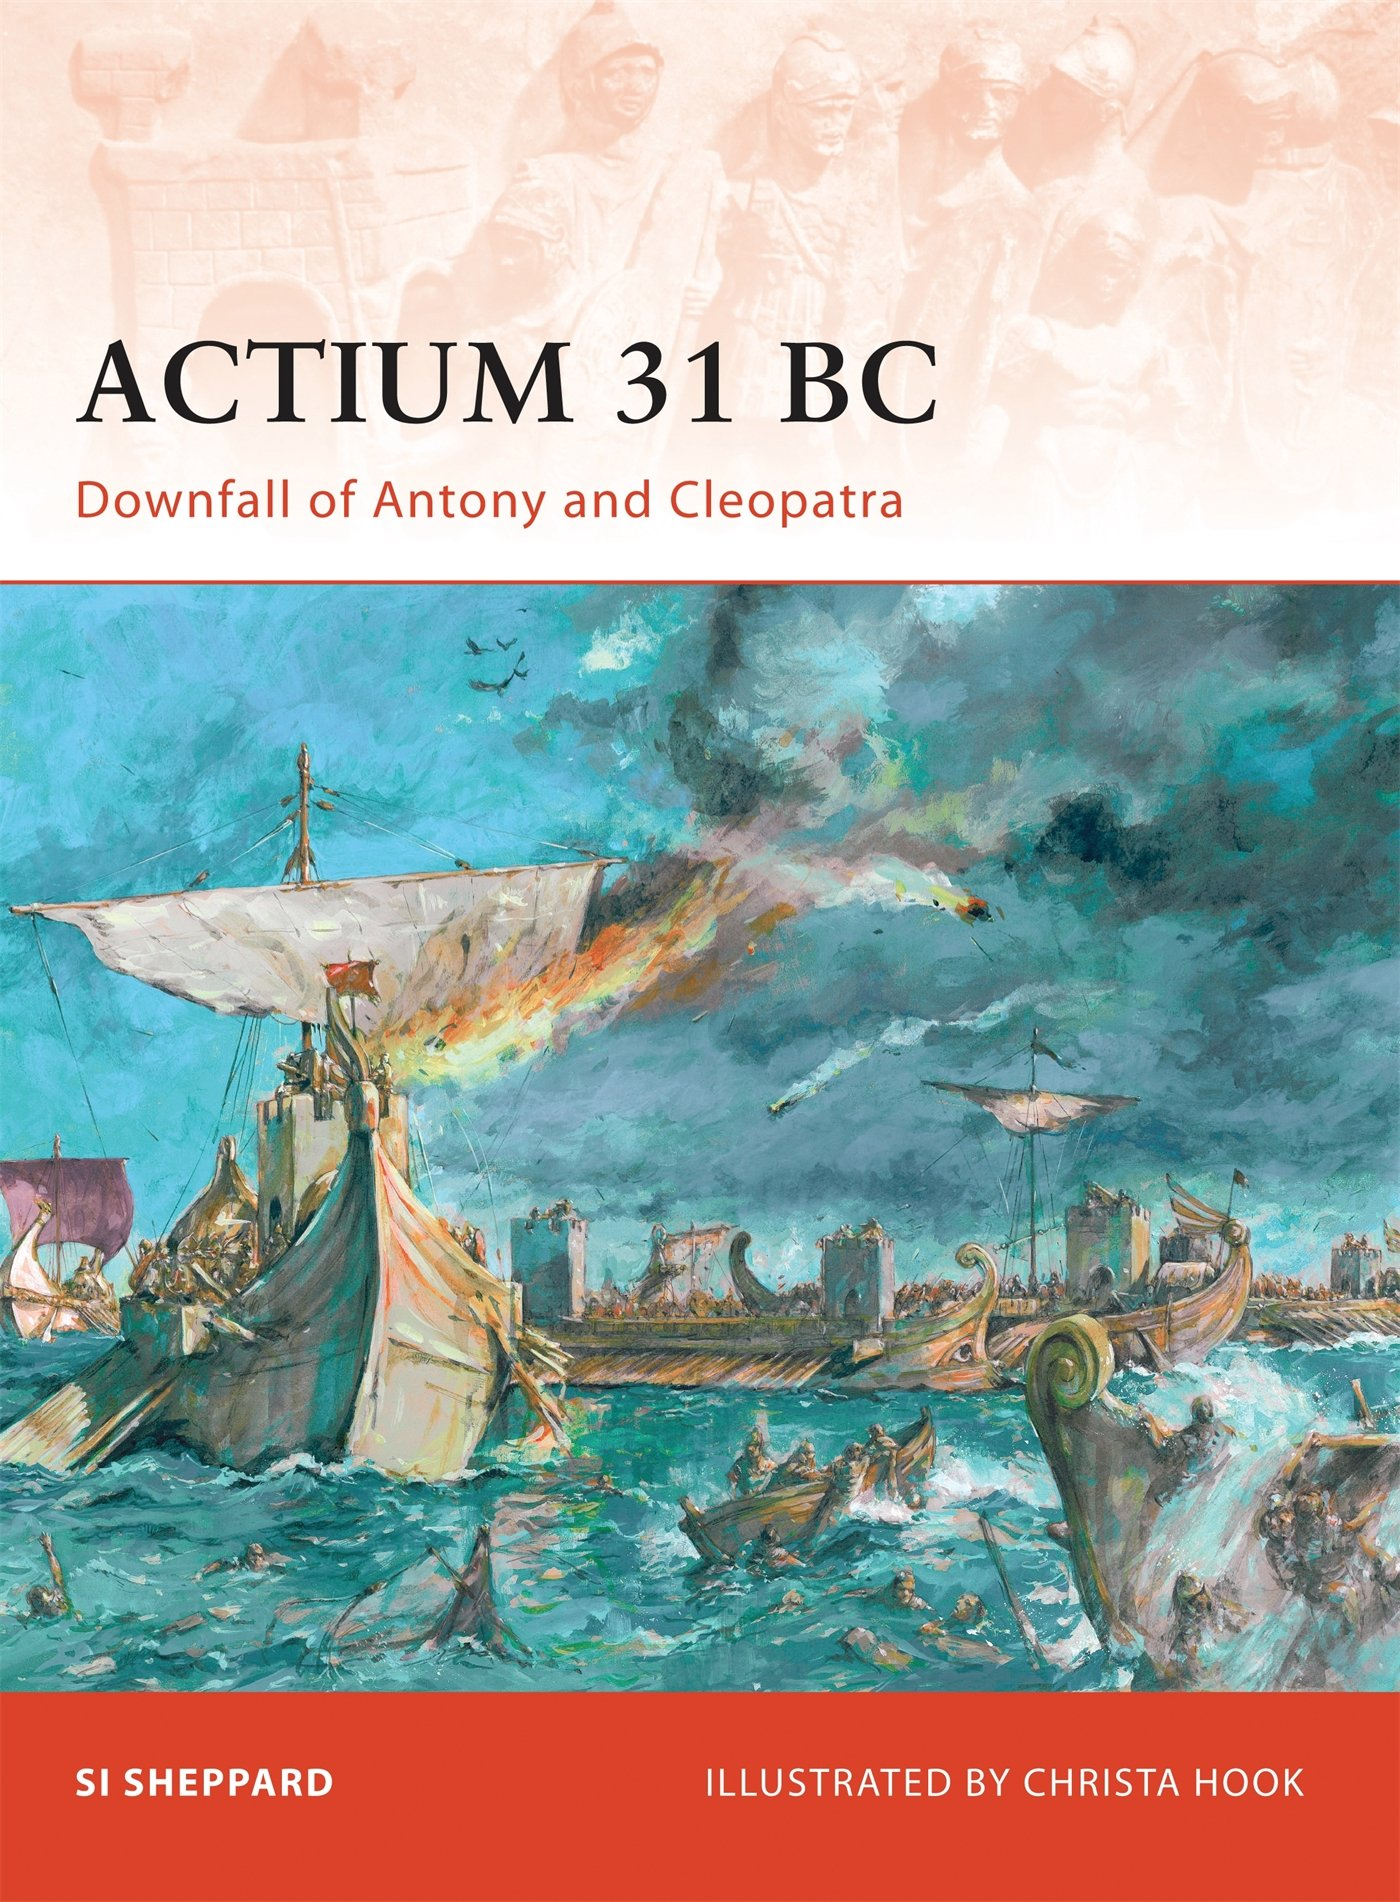 actium bc downfall of antony and cleopatra campaign si actium 31 bc downfall of antony and cleopatra campaign si sheppard christa hook 9781846034053 com books